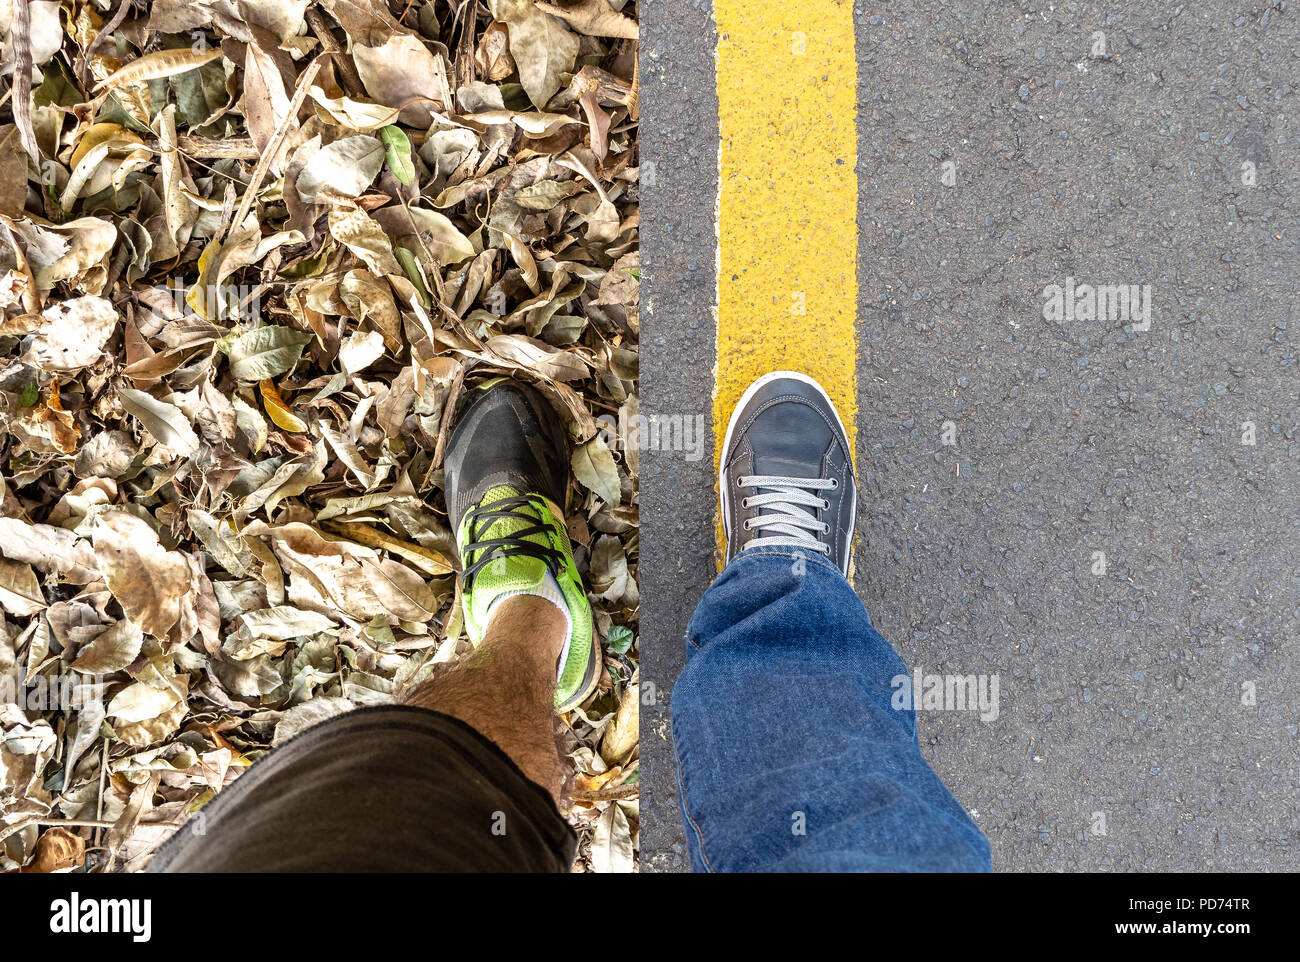 Composite of two images of personal perspective of the legs. One on the street and the other in the nature - Stock Image